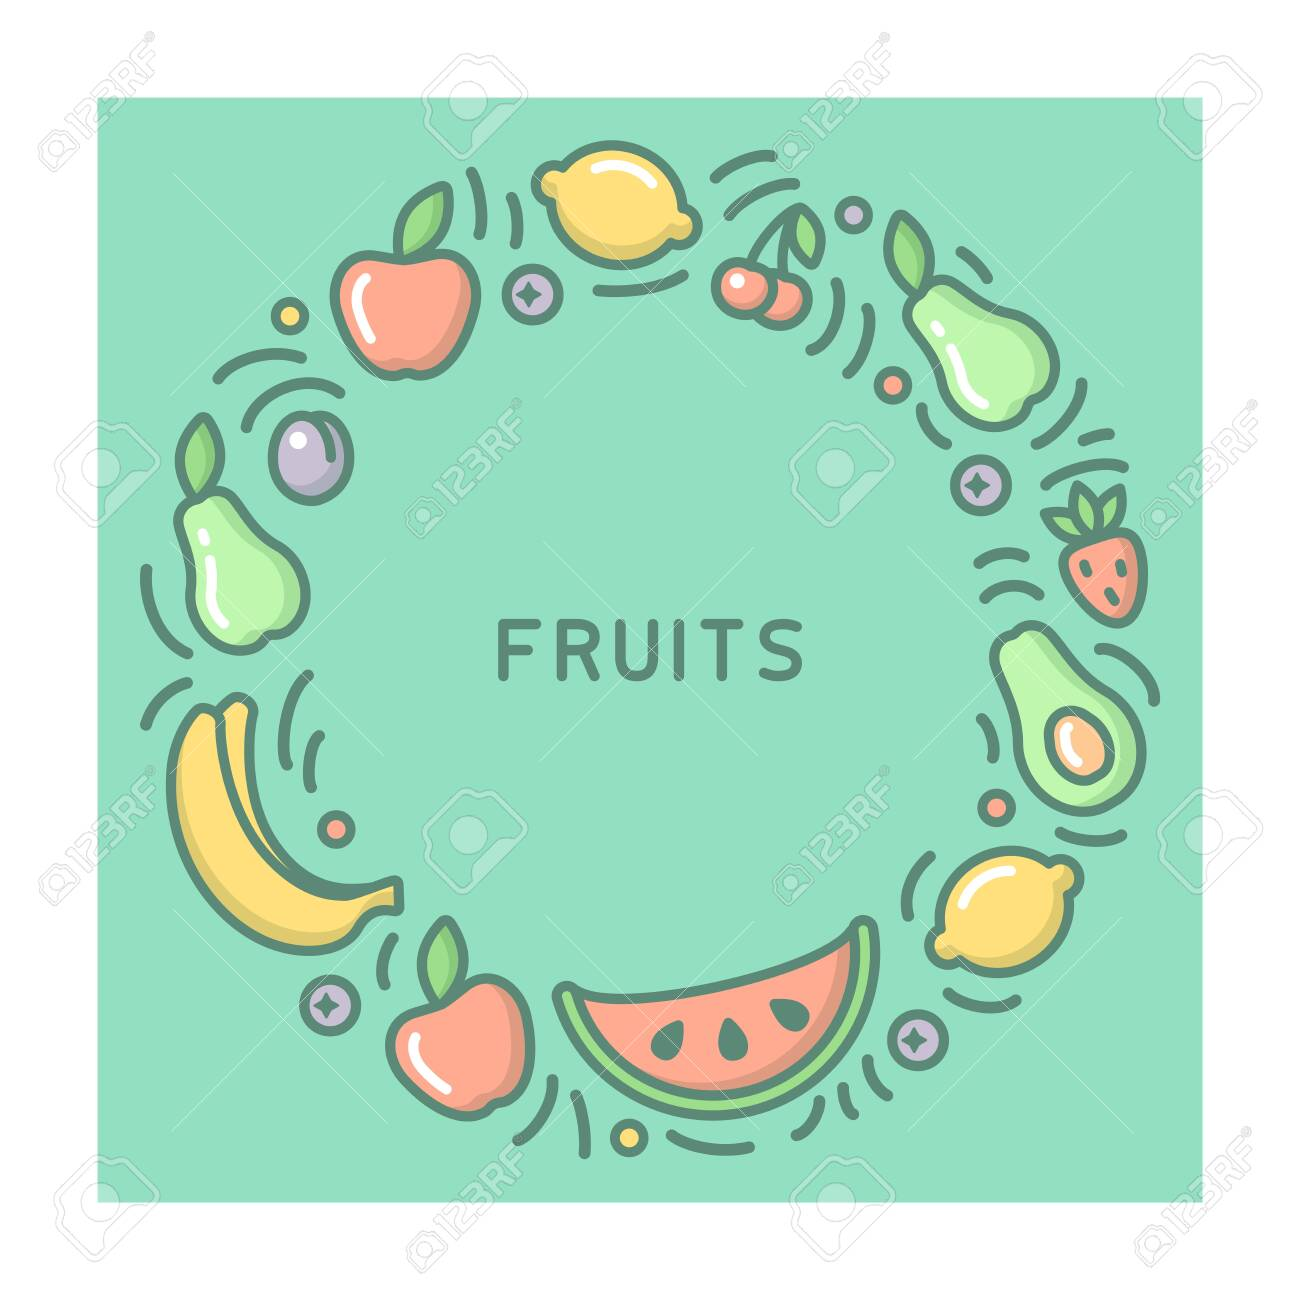 Round form concept with fruits and barries. Cartoon style vector illustration - 127023268